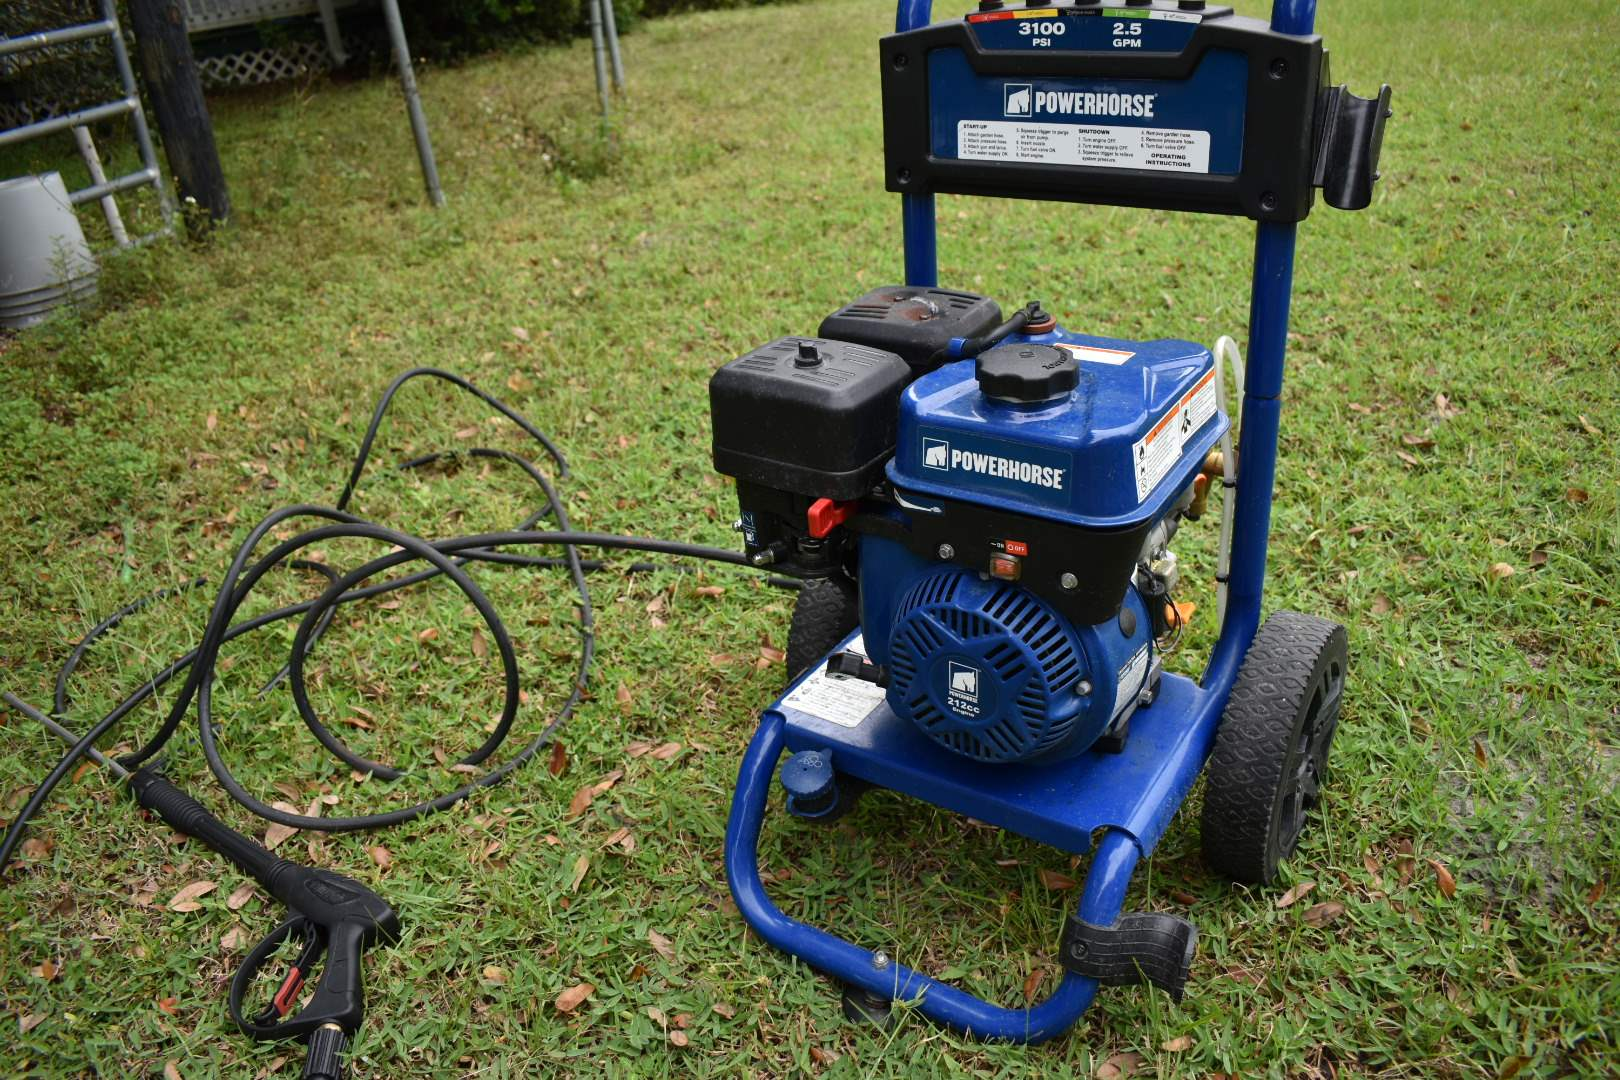 Powerhorse Gas-Powered Pressure Washer with Hose and Gun